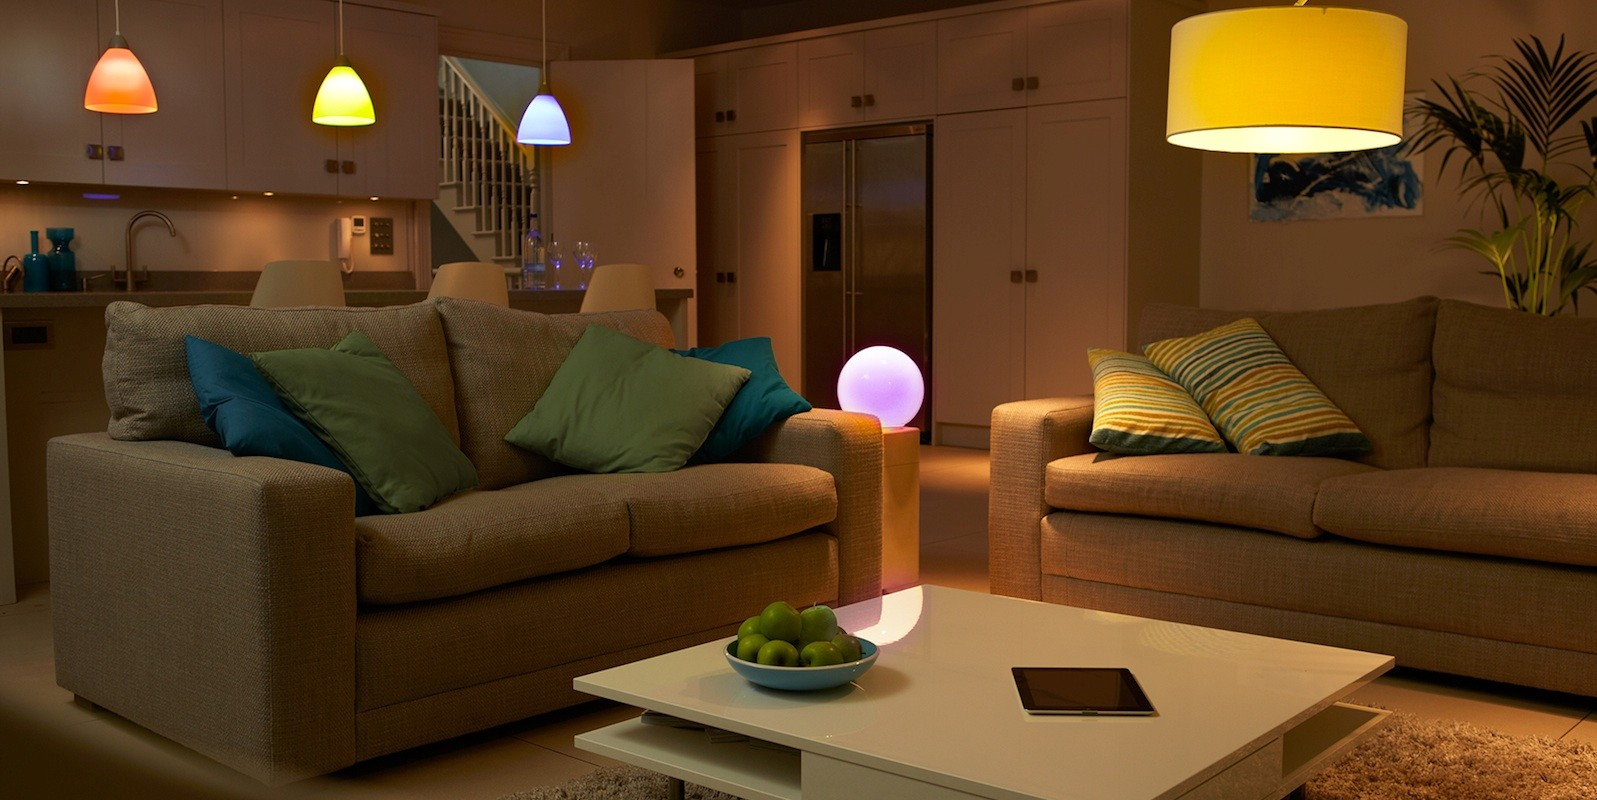 Image: Smart House - Living Room